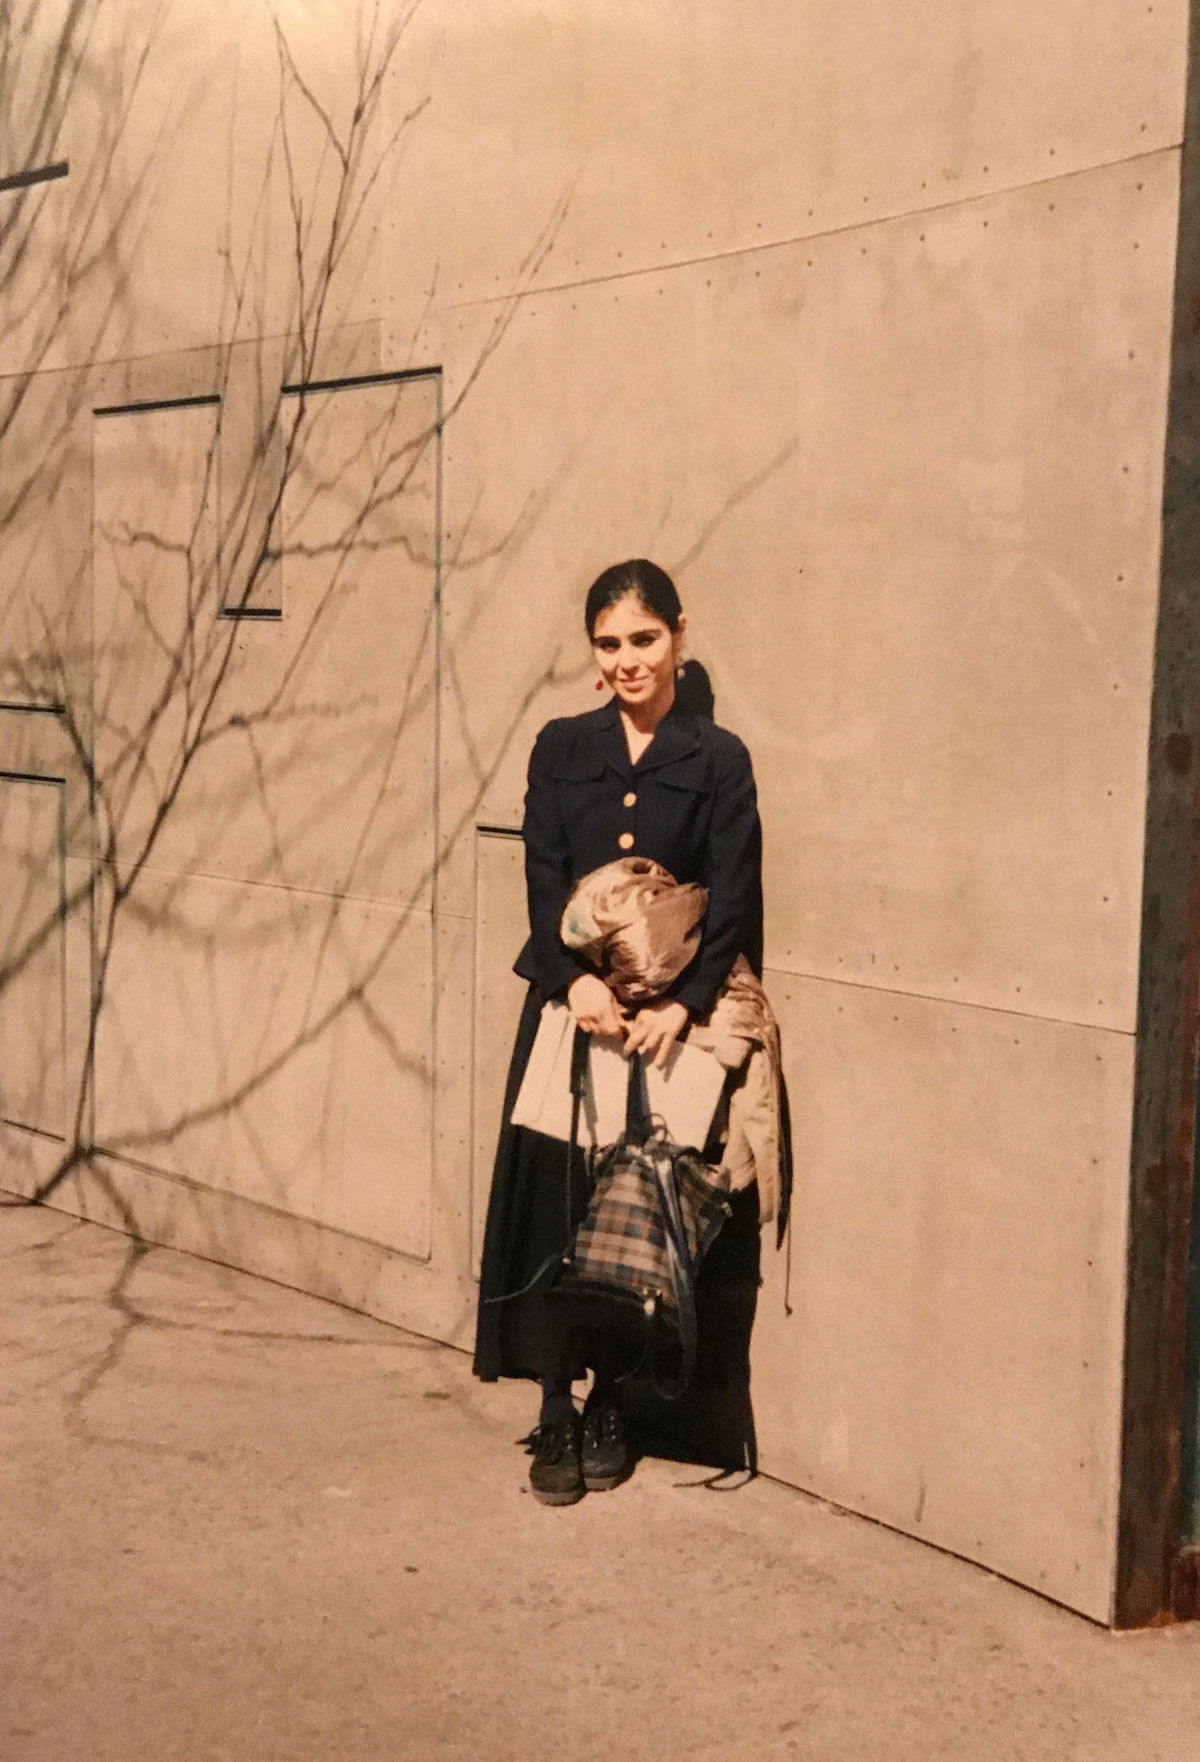 Shirin Neshat in front of the exhibition space, Storefront, in downtown Manhattan circa 1980s. Courtesy of the artist and Gladstone Gallery, New York and Brussels.